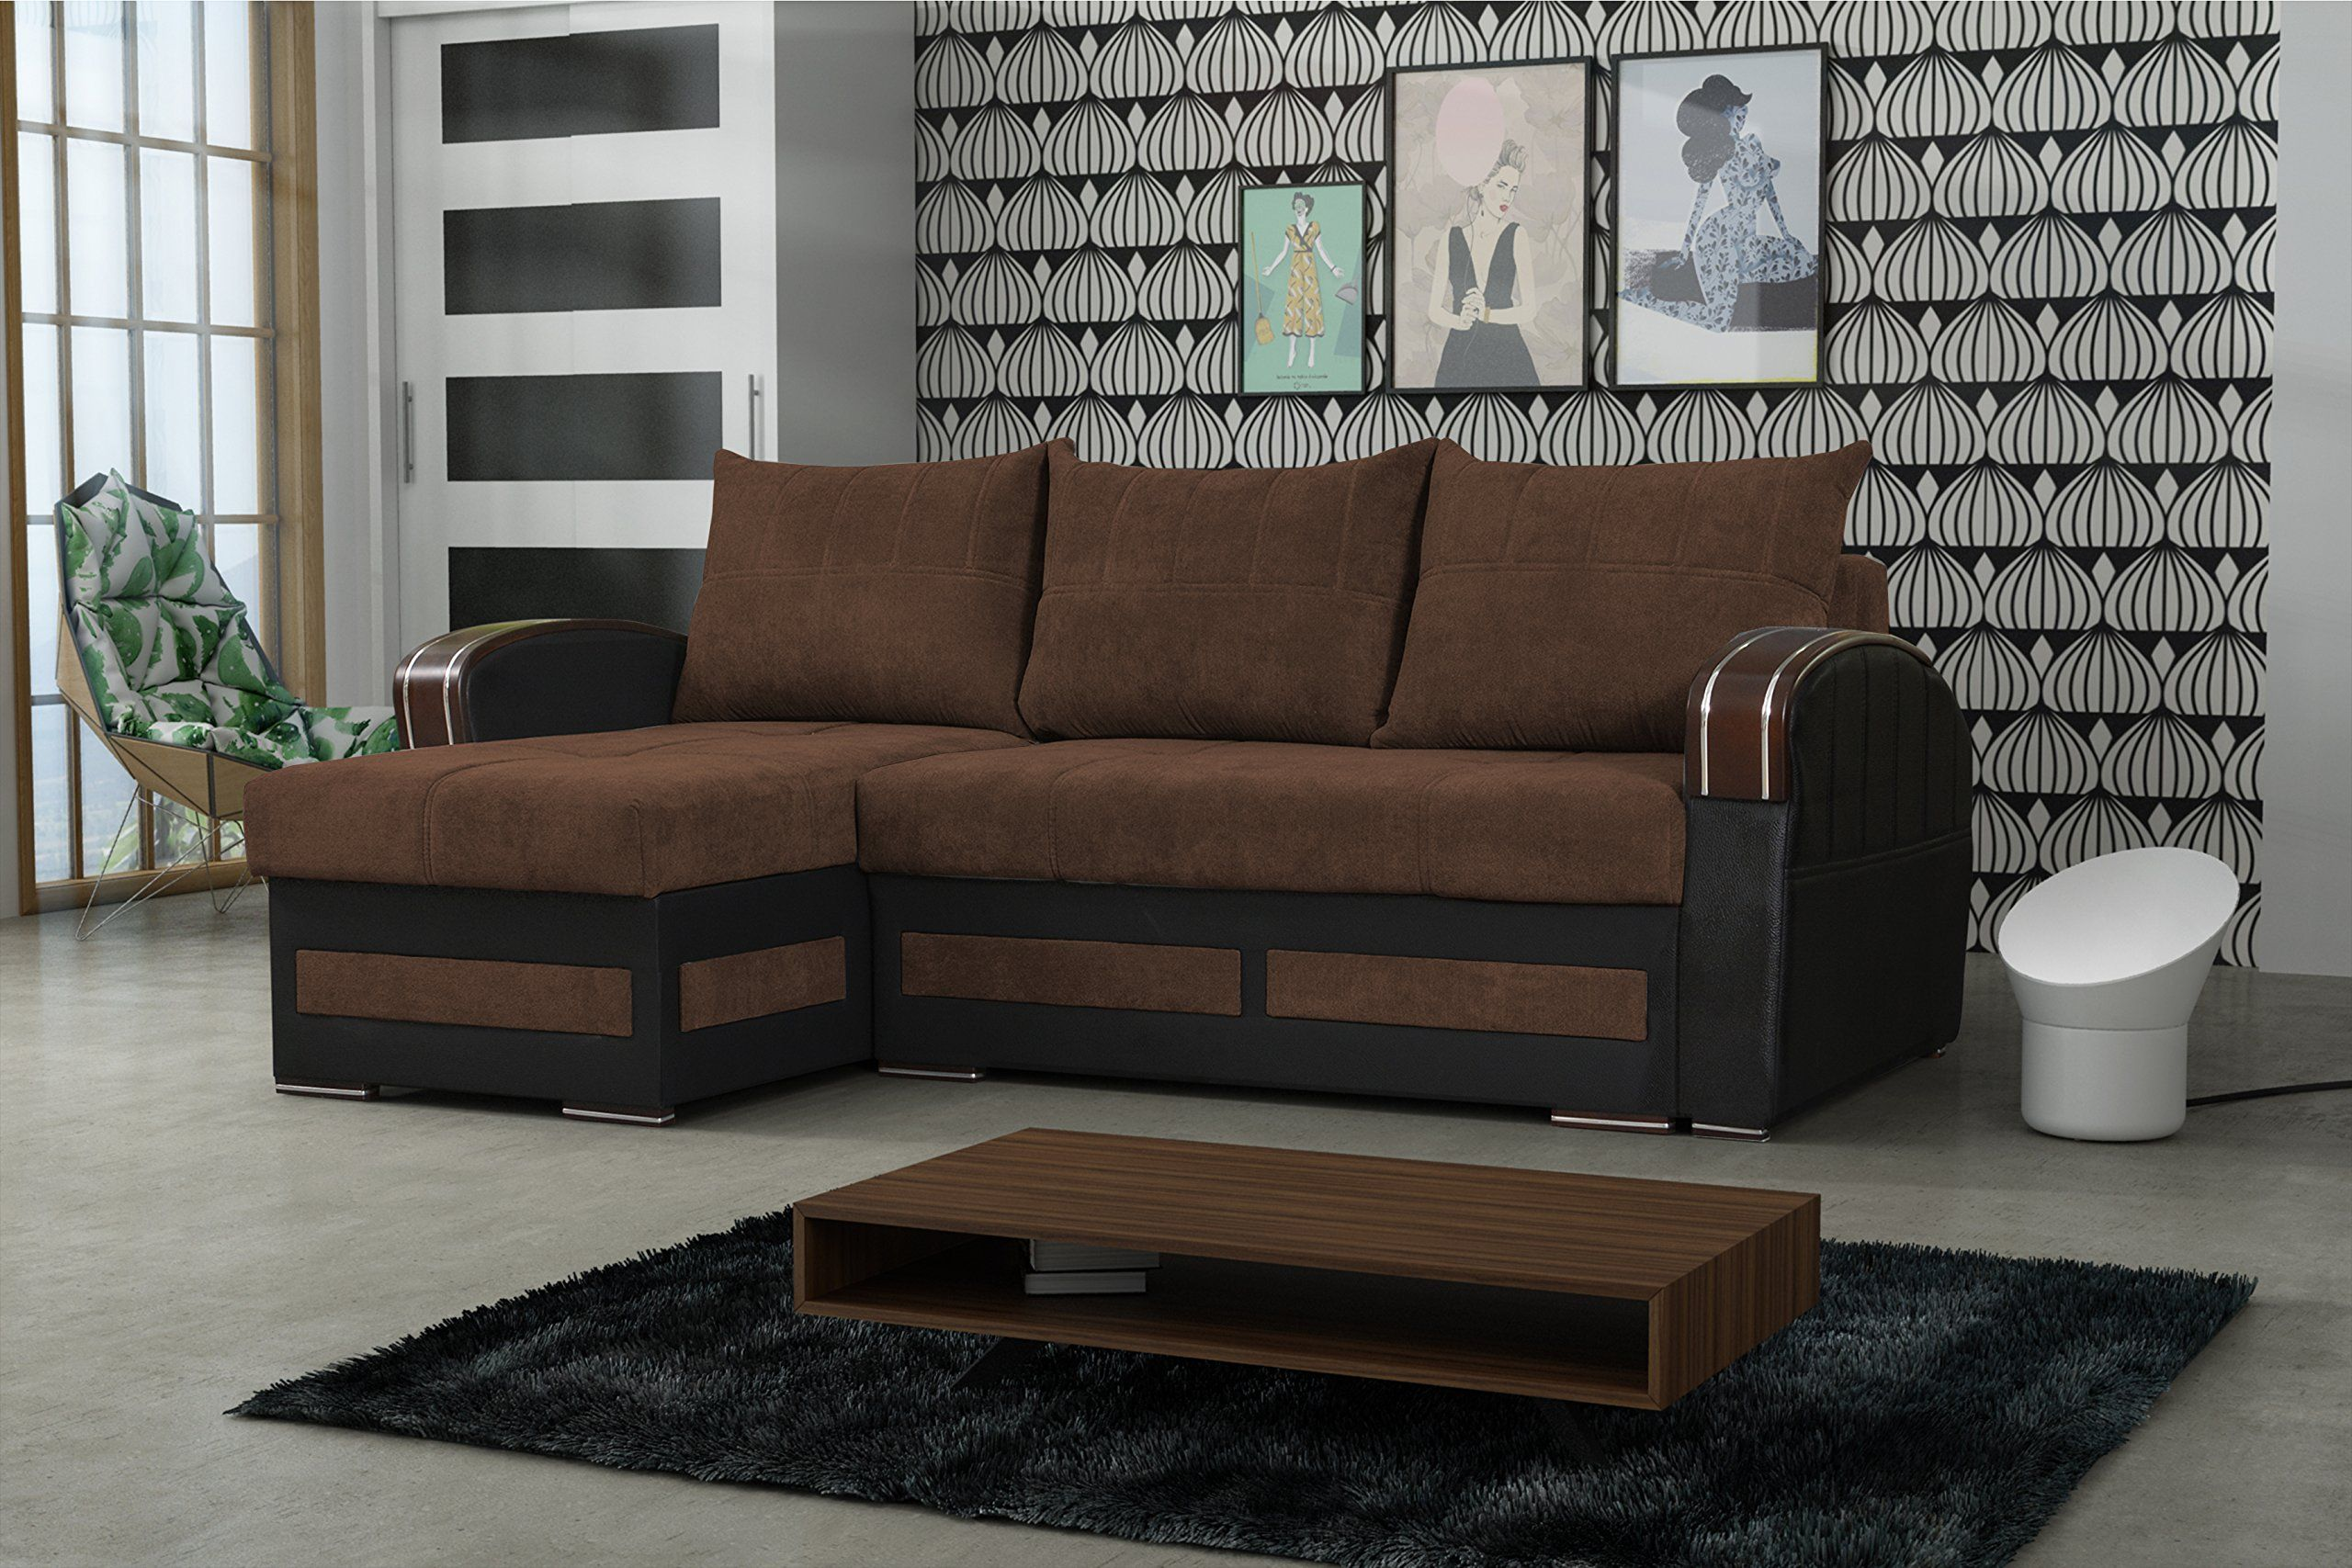 Sofa Bed Sectional Tommy Brown Click The Image For Extra Information This Is An Affiliate Link In 2020 Sofa Bed With Storage Luxury Sofa Sofa Home